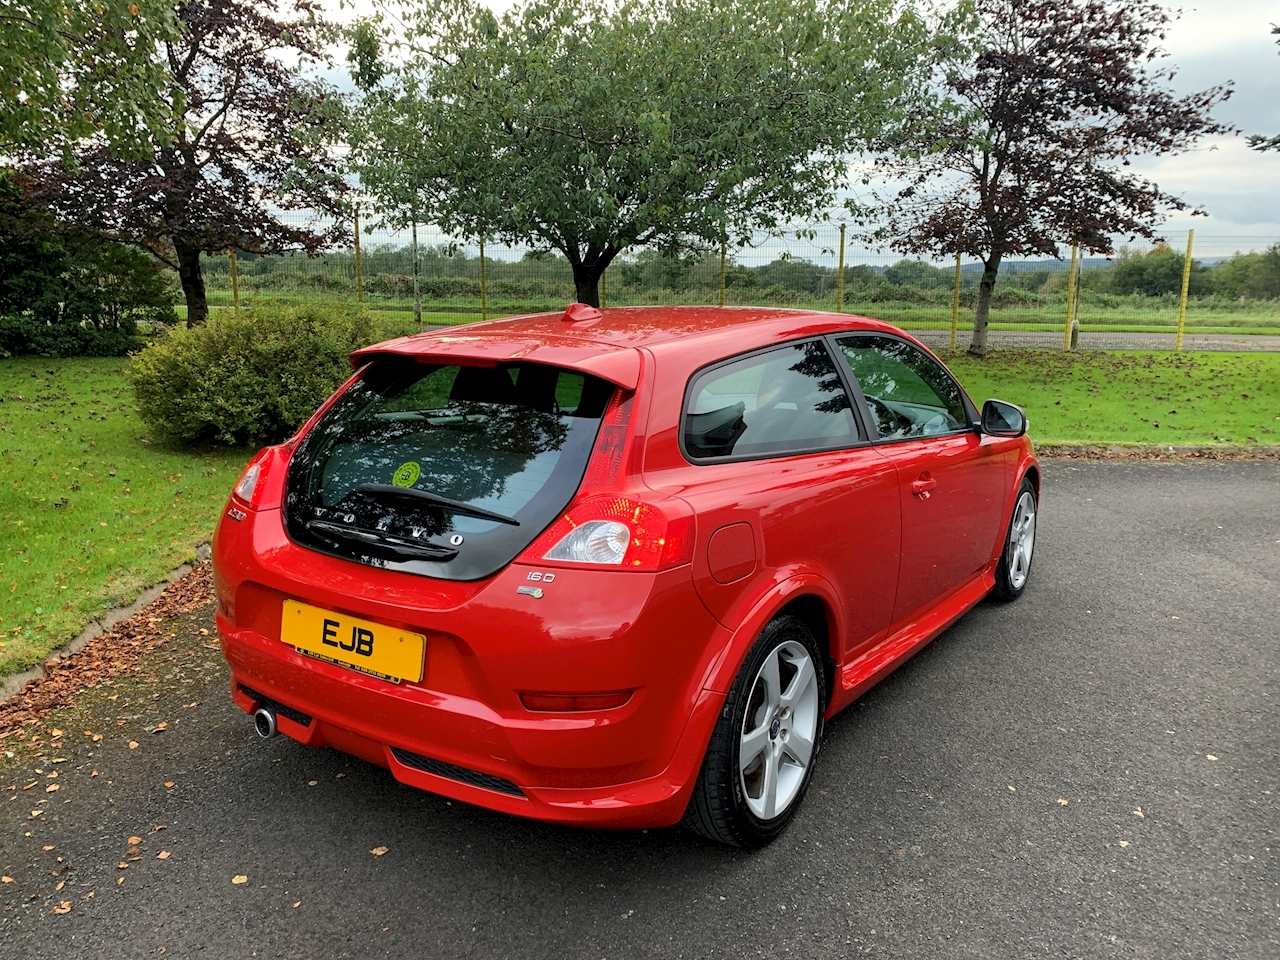 C30 R-Design Coupe 1.6 Manual Diesel